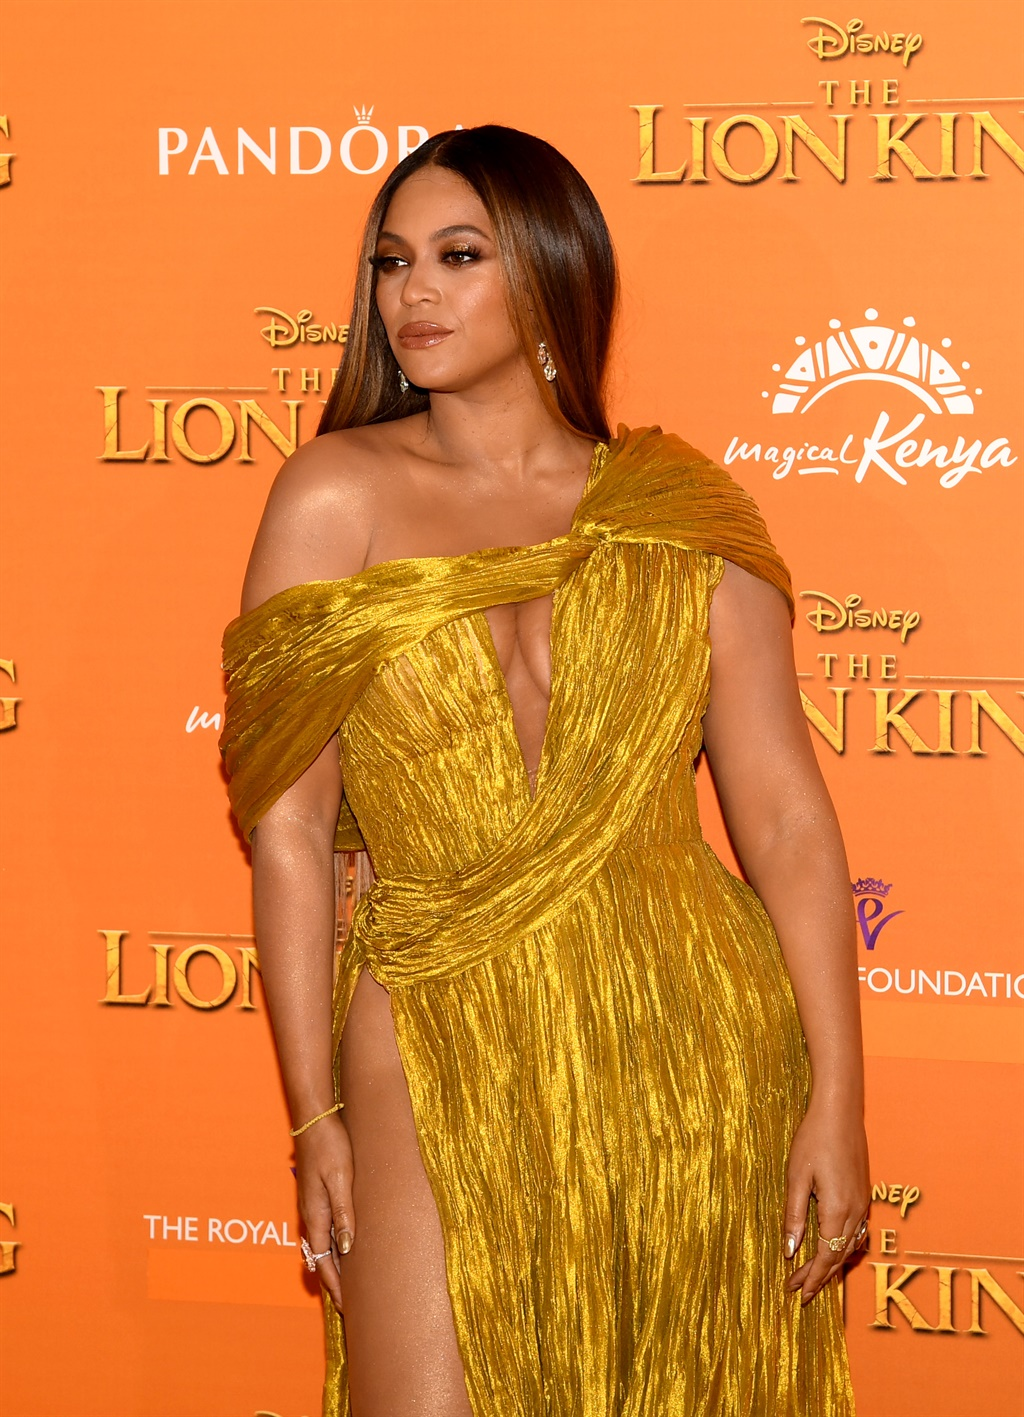 Beyonce Knowles-Carter. Photo by Gareth Cattermole/Getty Images for Disney